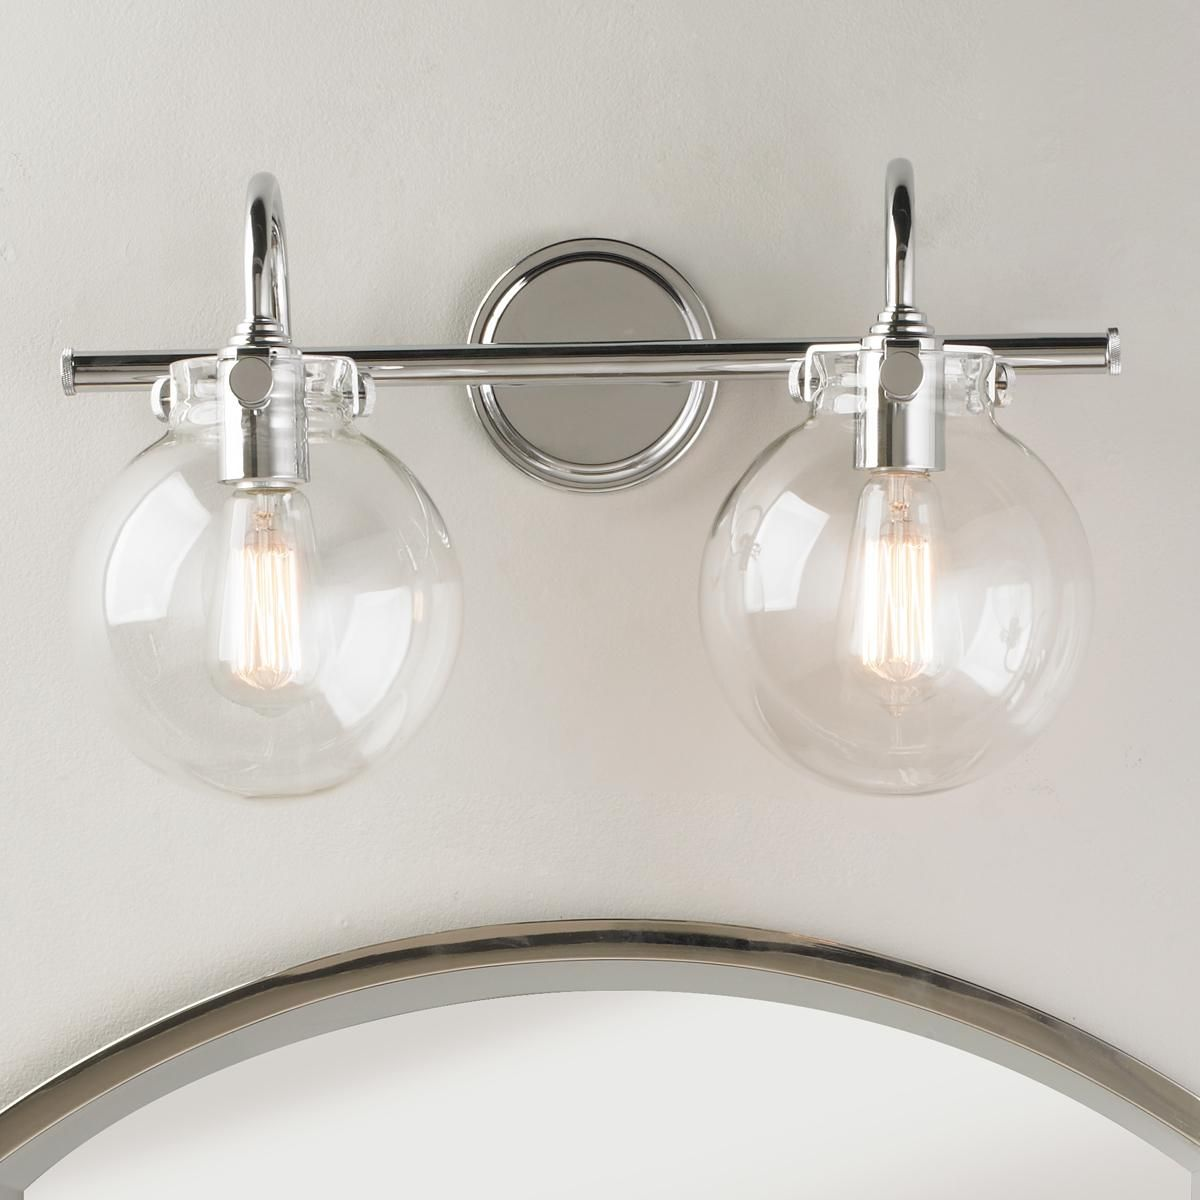 Vanity Light Glass Globes : Retro Glass Globe Bath Light - 2 Light Bath light, Globe and Vanities